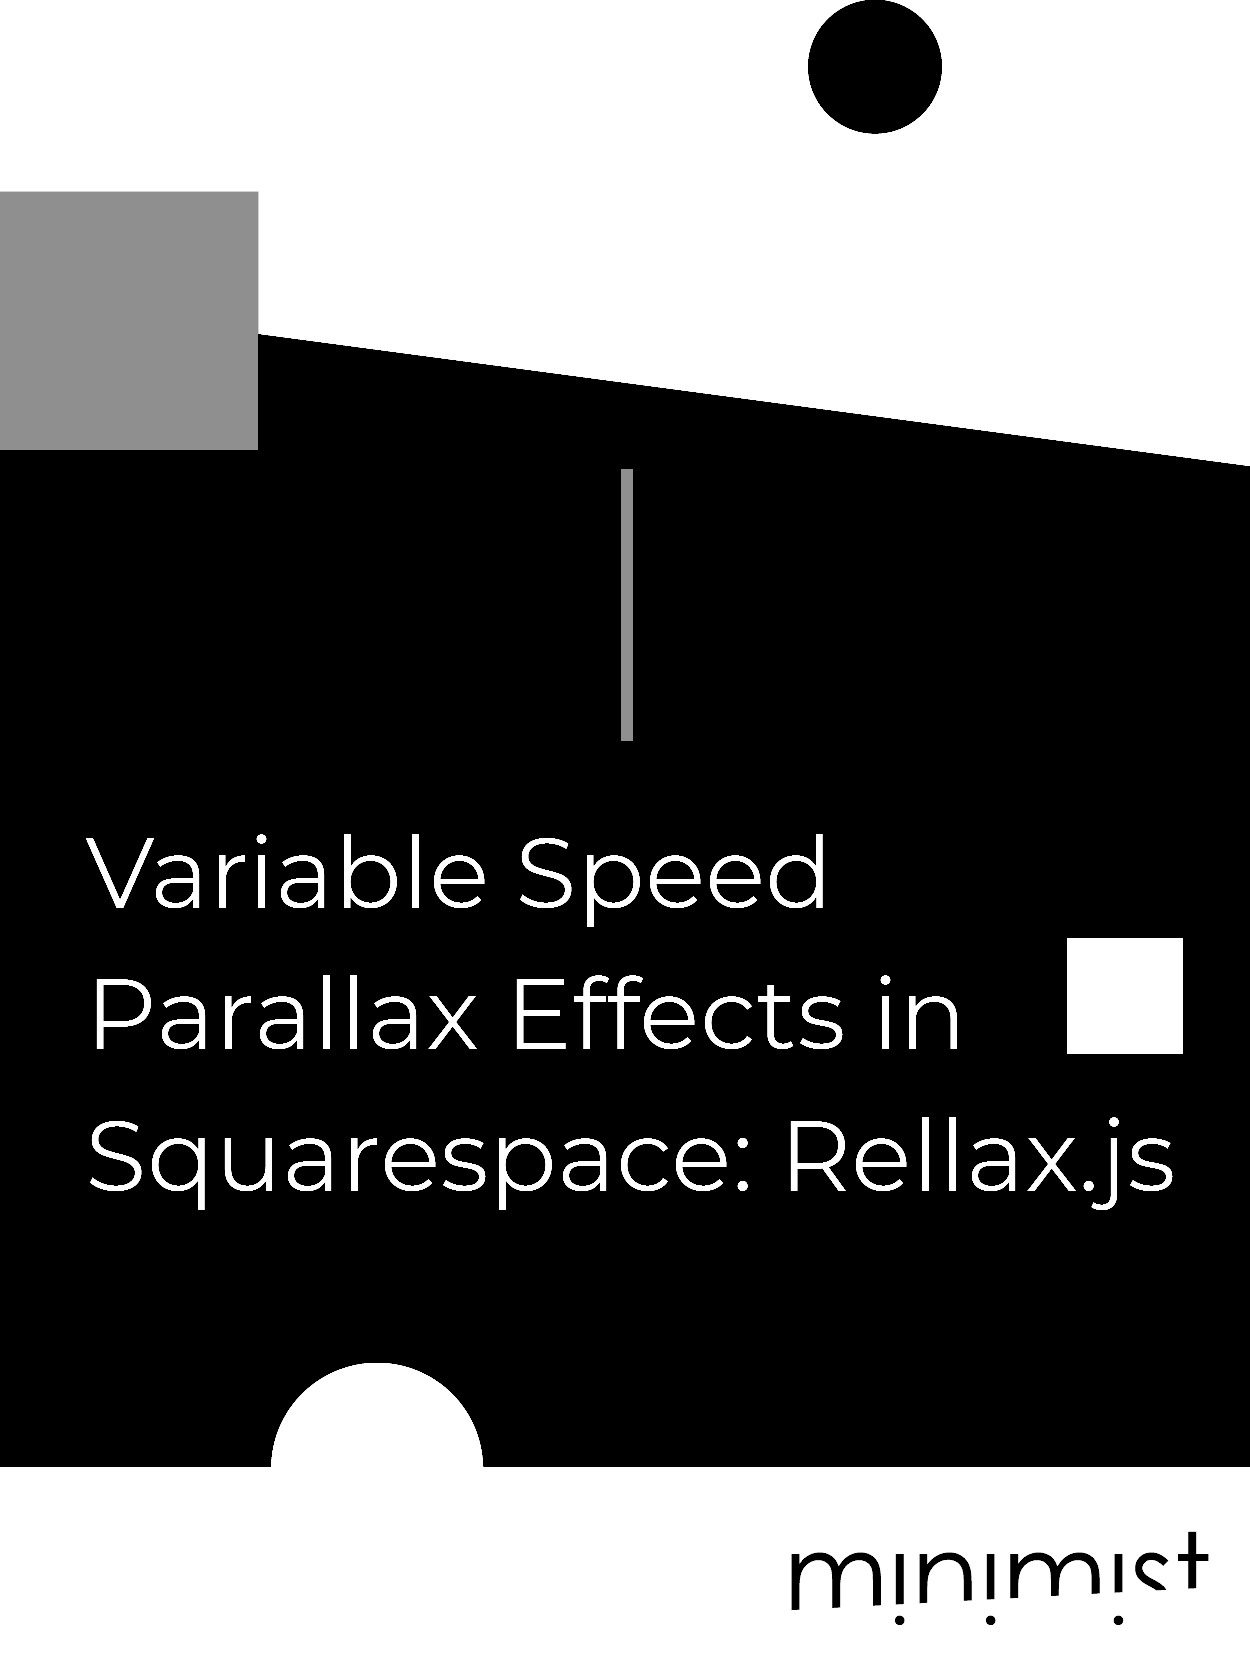 Variable Speed Parallax Effects in Squarespace - Rellax